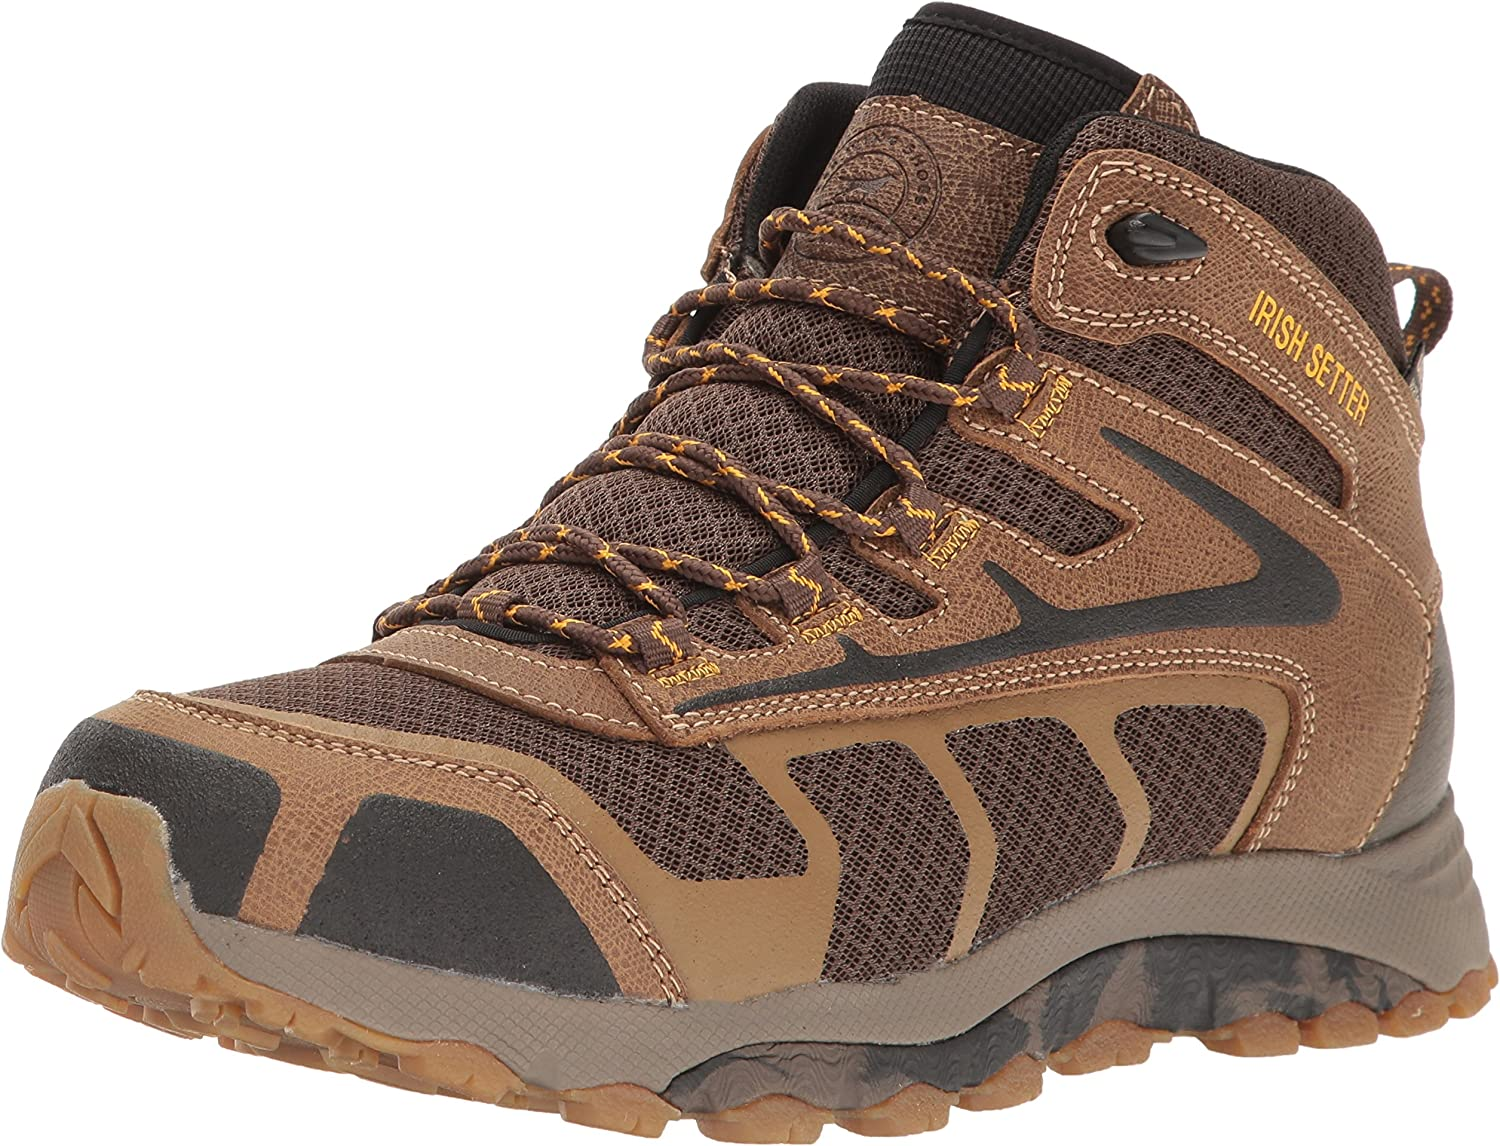 Irish Setter Men's Waterproof Drifter Hiking Boot